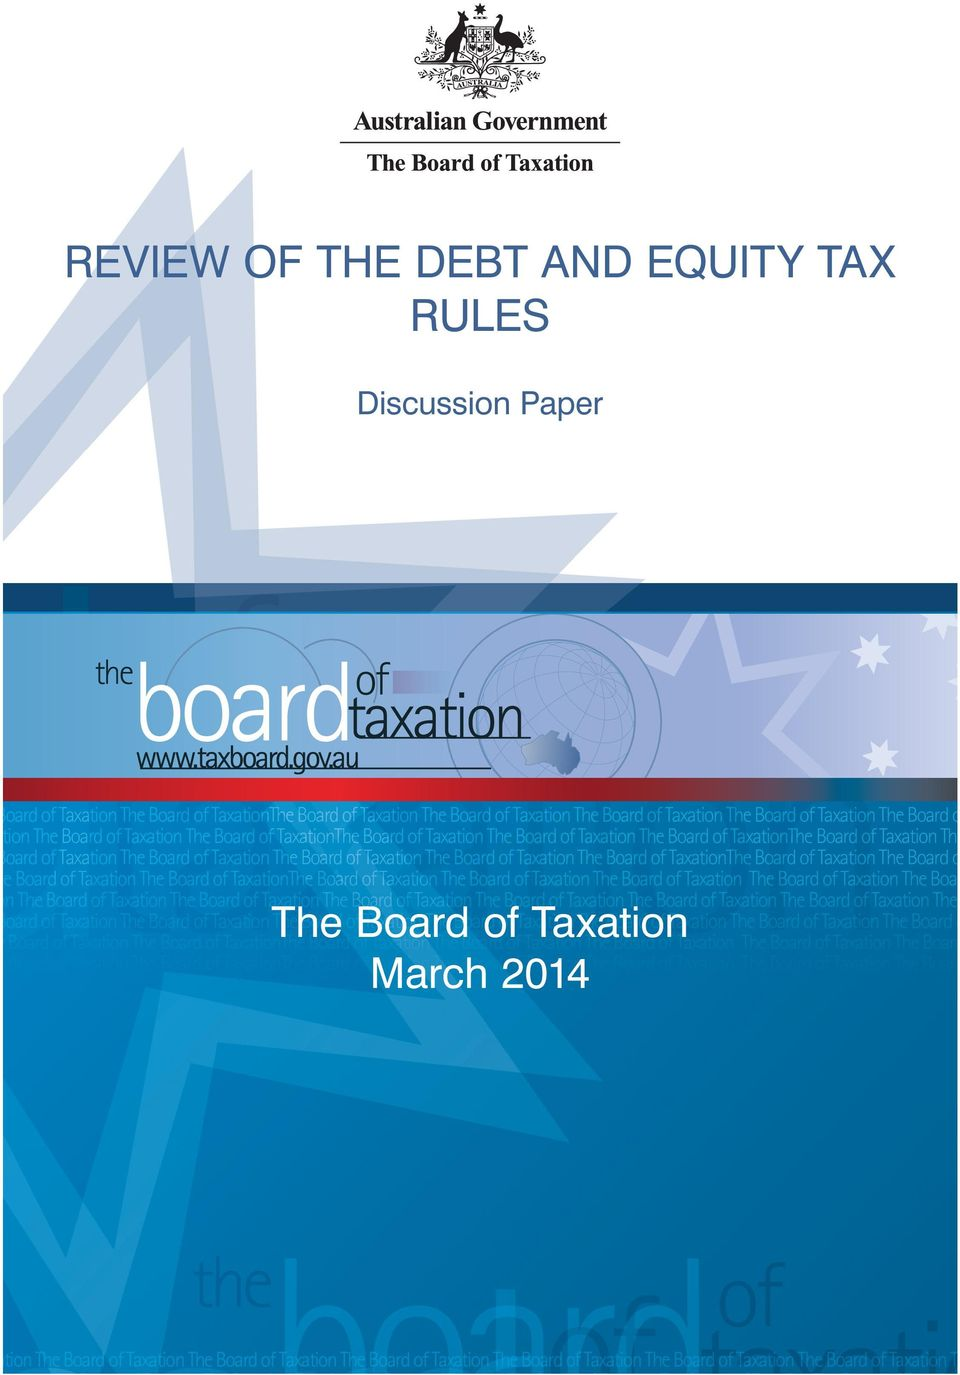 boardtaxation the of www.